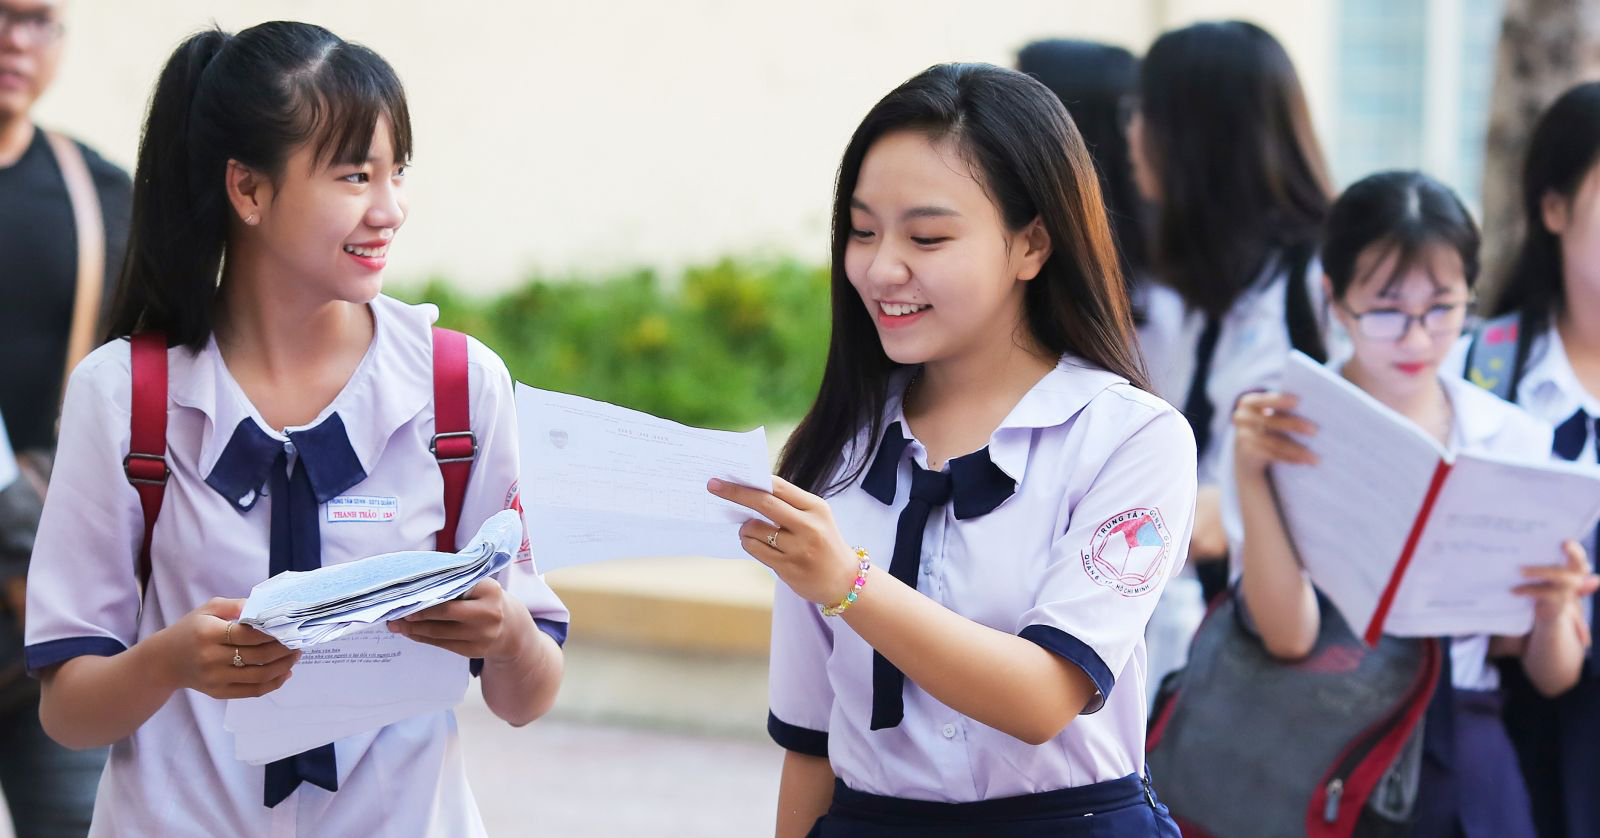 Sforum - The latest technology information page 191-7 The fastest and most accurate guide for searching National High School Exam 2019